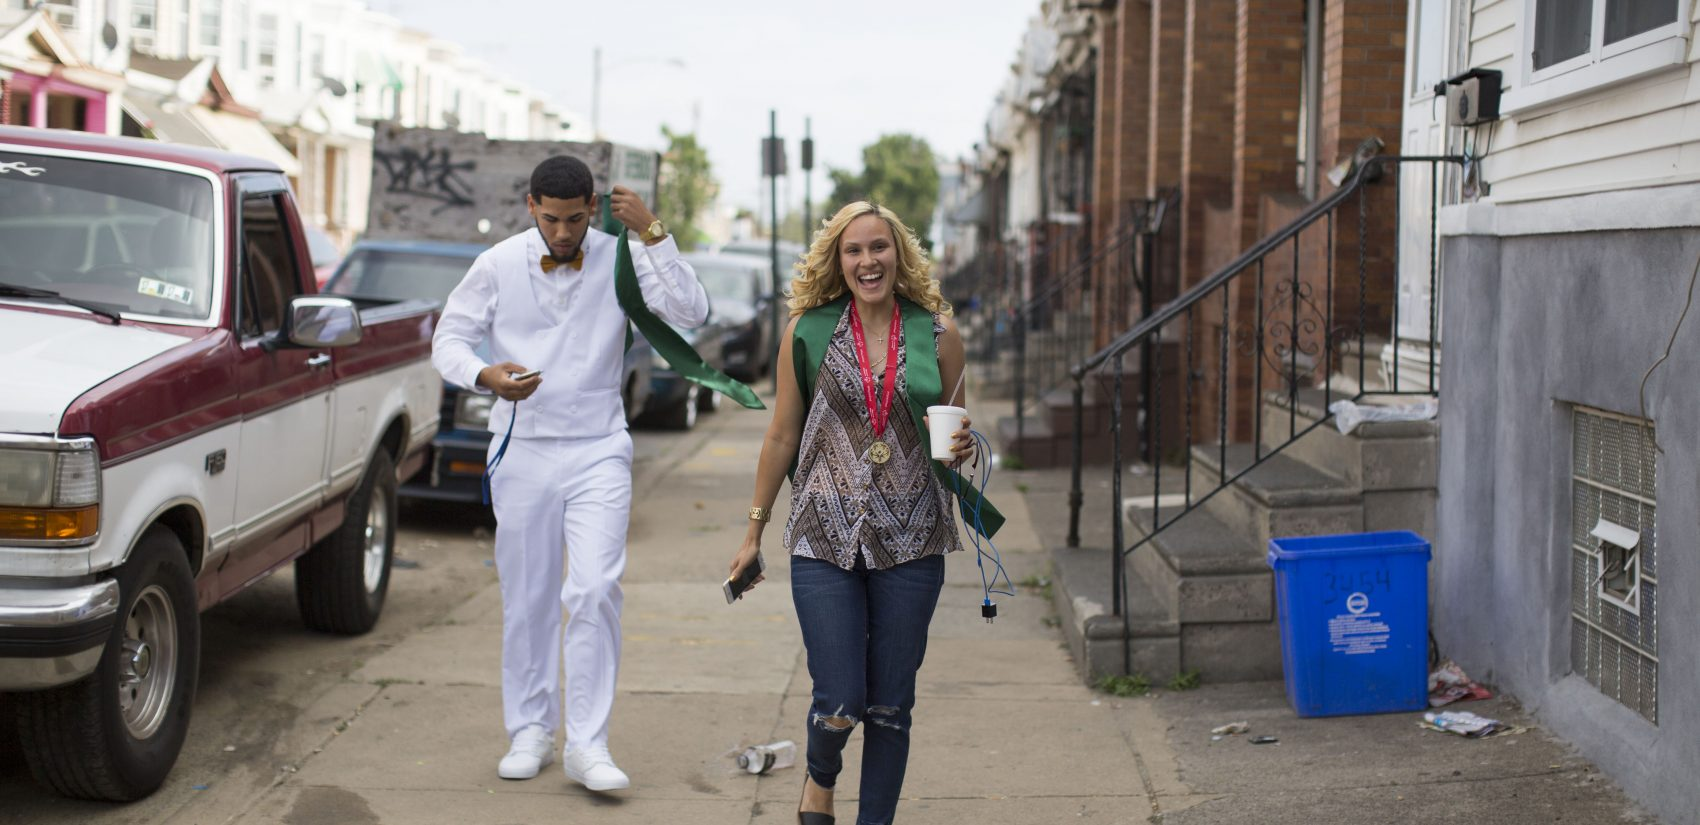 </b> Walking down her block, Savannah beams with pride on graduation day. (Jessica Kourkounis/For Keystone Crossroads)